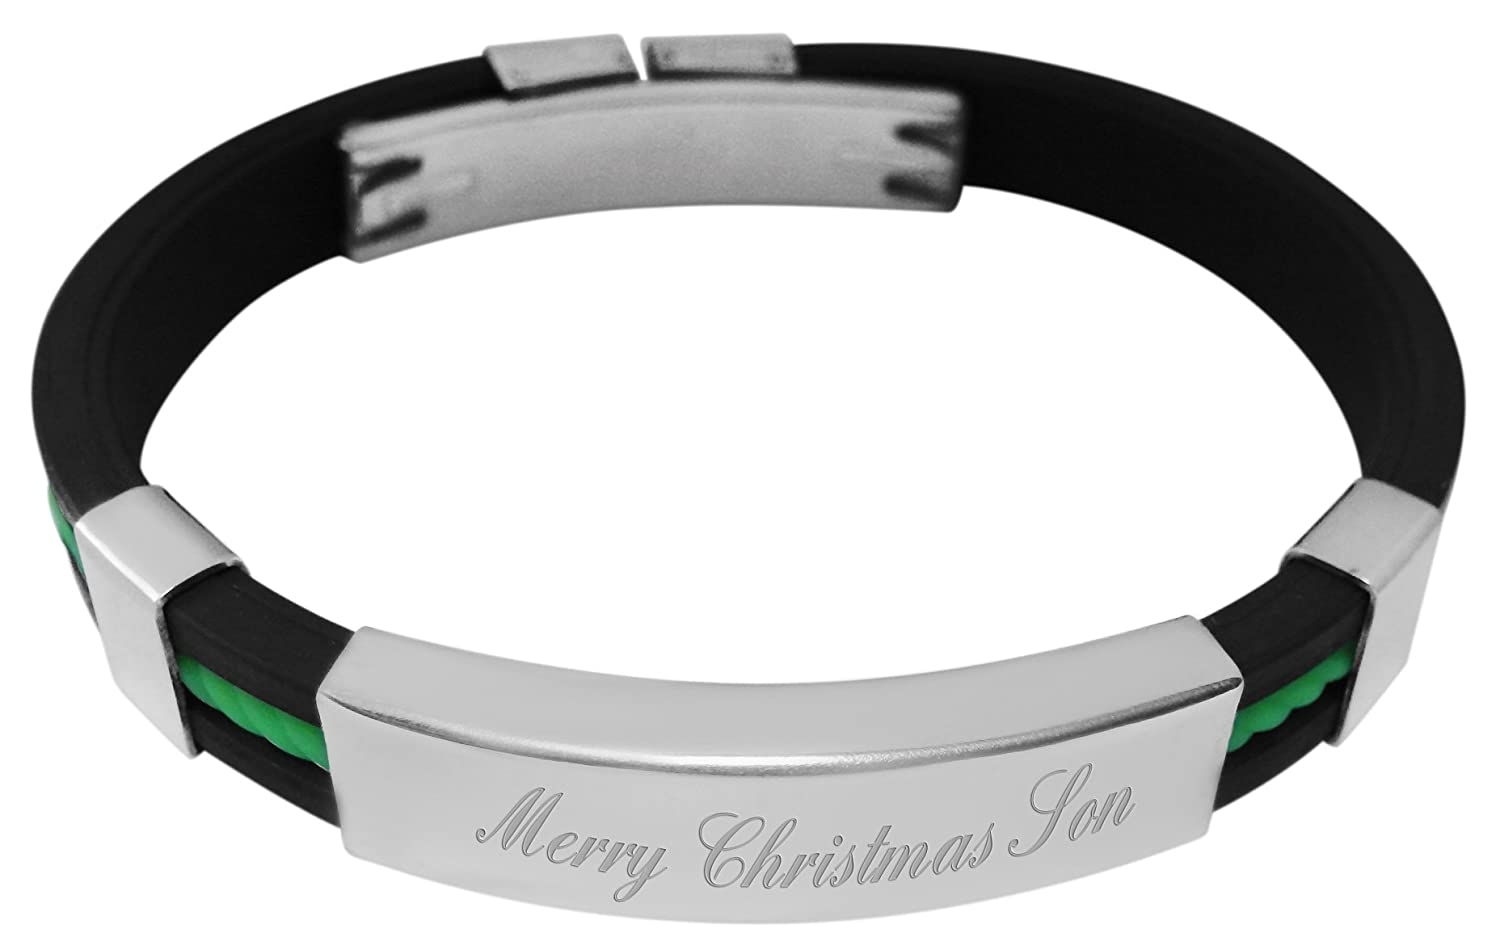 Luxury Engraved Gifts UK Mens Merry Christmas Son Rubber /& Steel Identity Id Bangle Bracelet YD